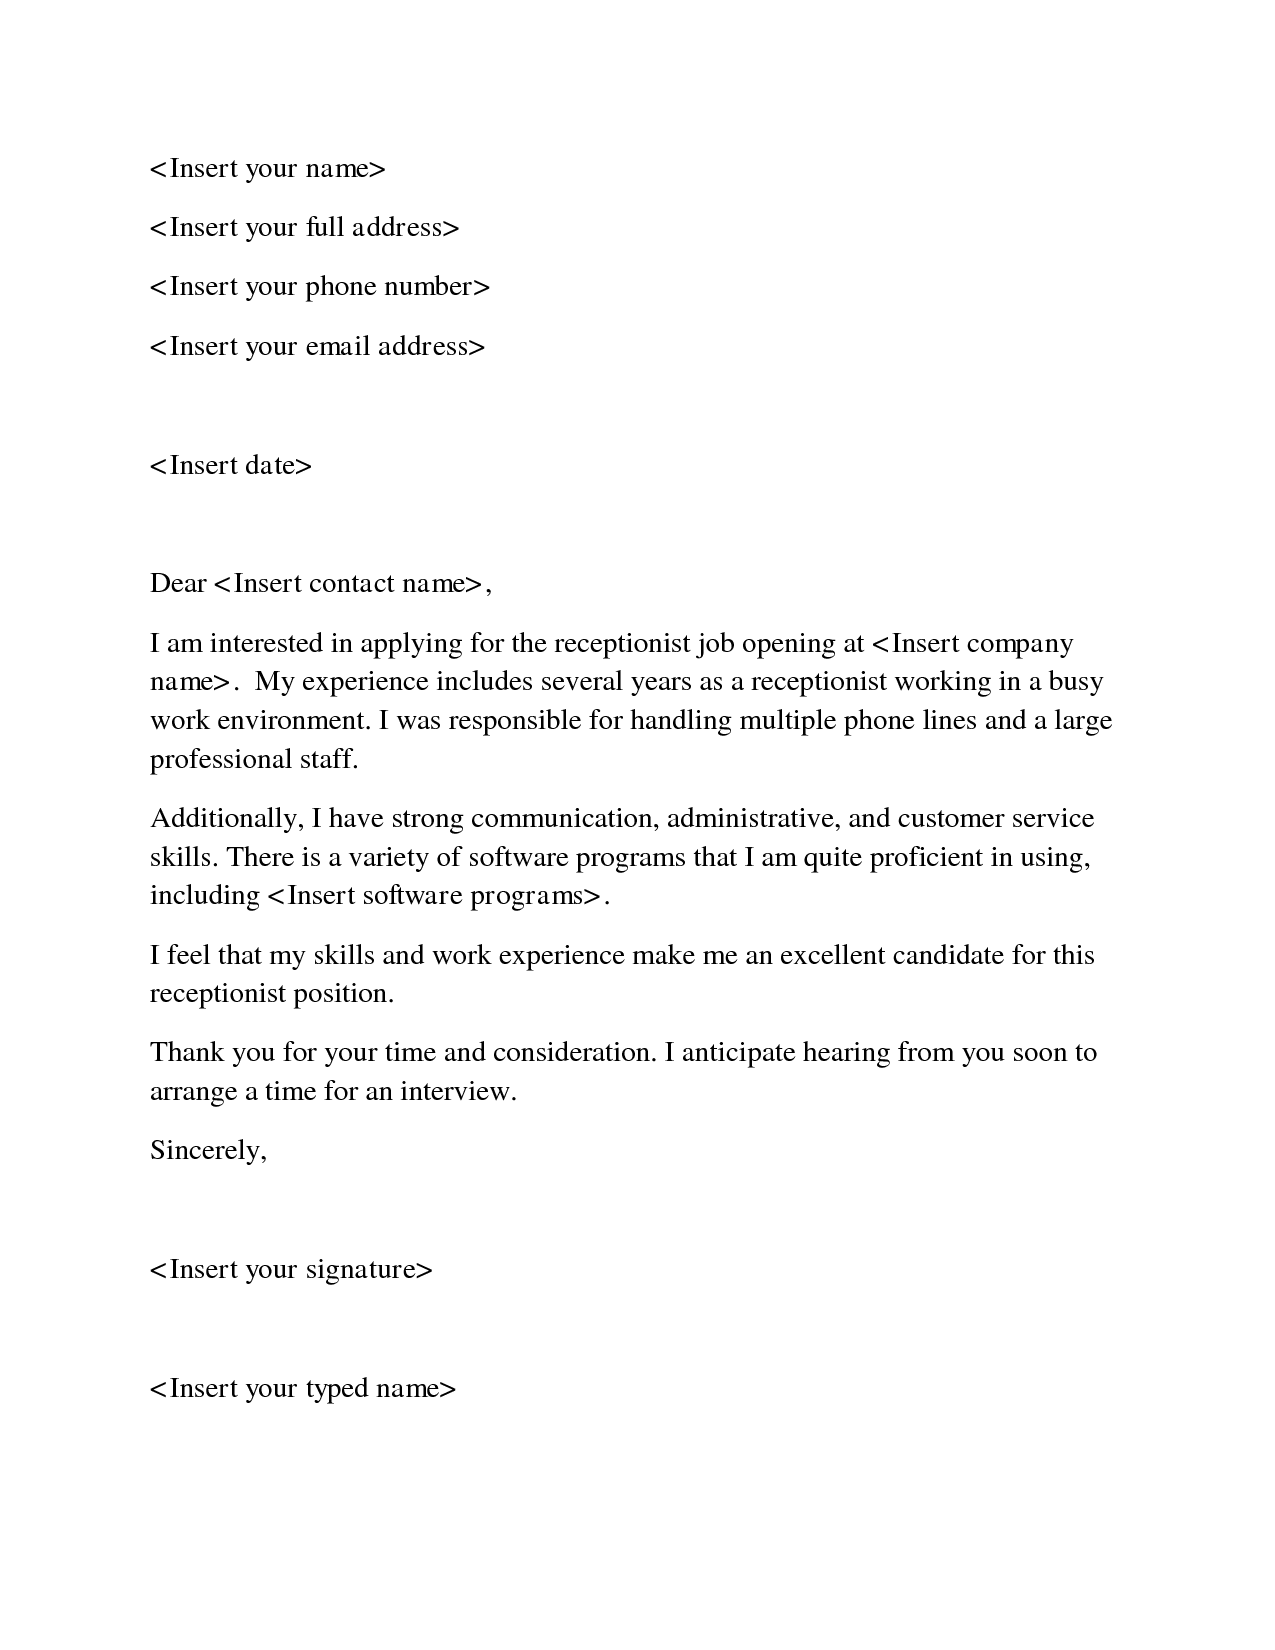 Marvelous Cover Letter Help Receptionist Resume Top Essay WritingCover Letter Samples  For Jobs Application Letter Sample Regarding Cover Letter Receptionist